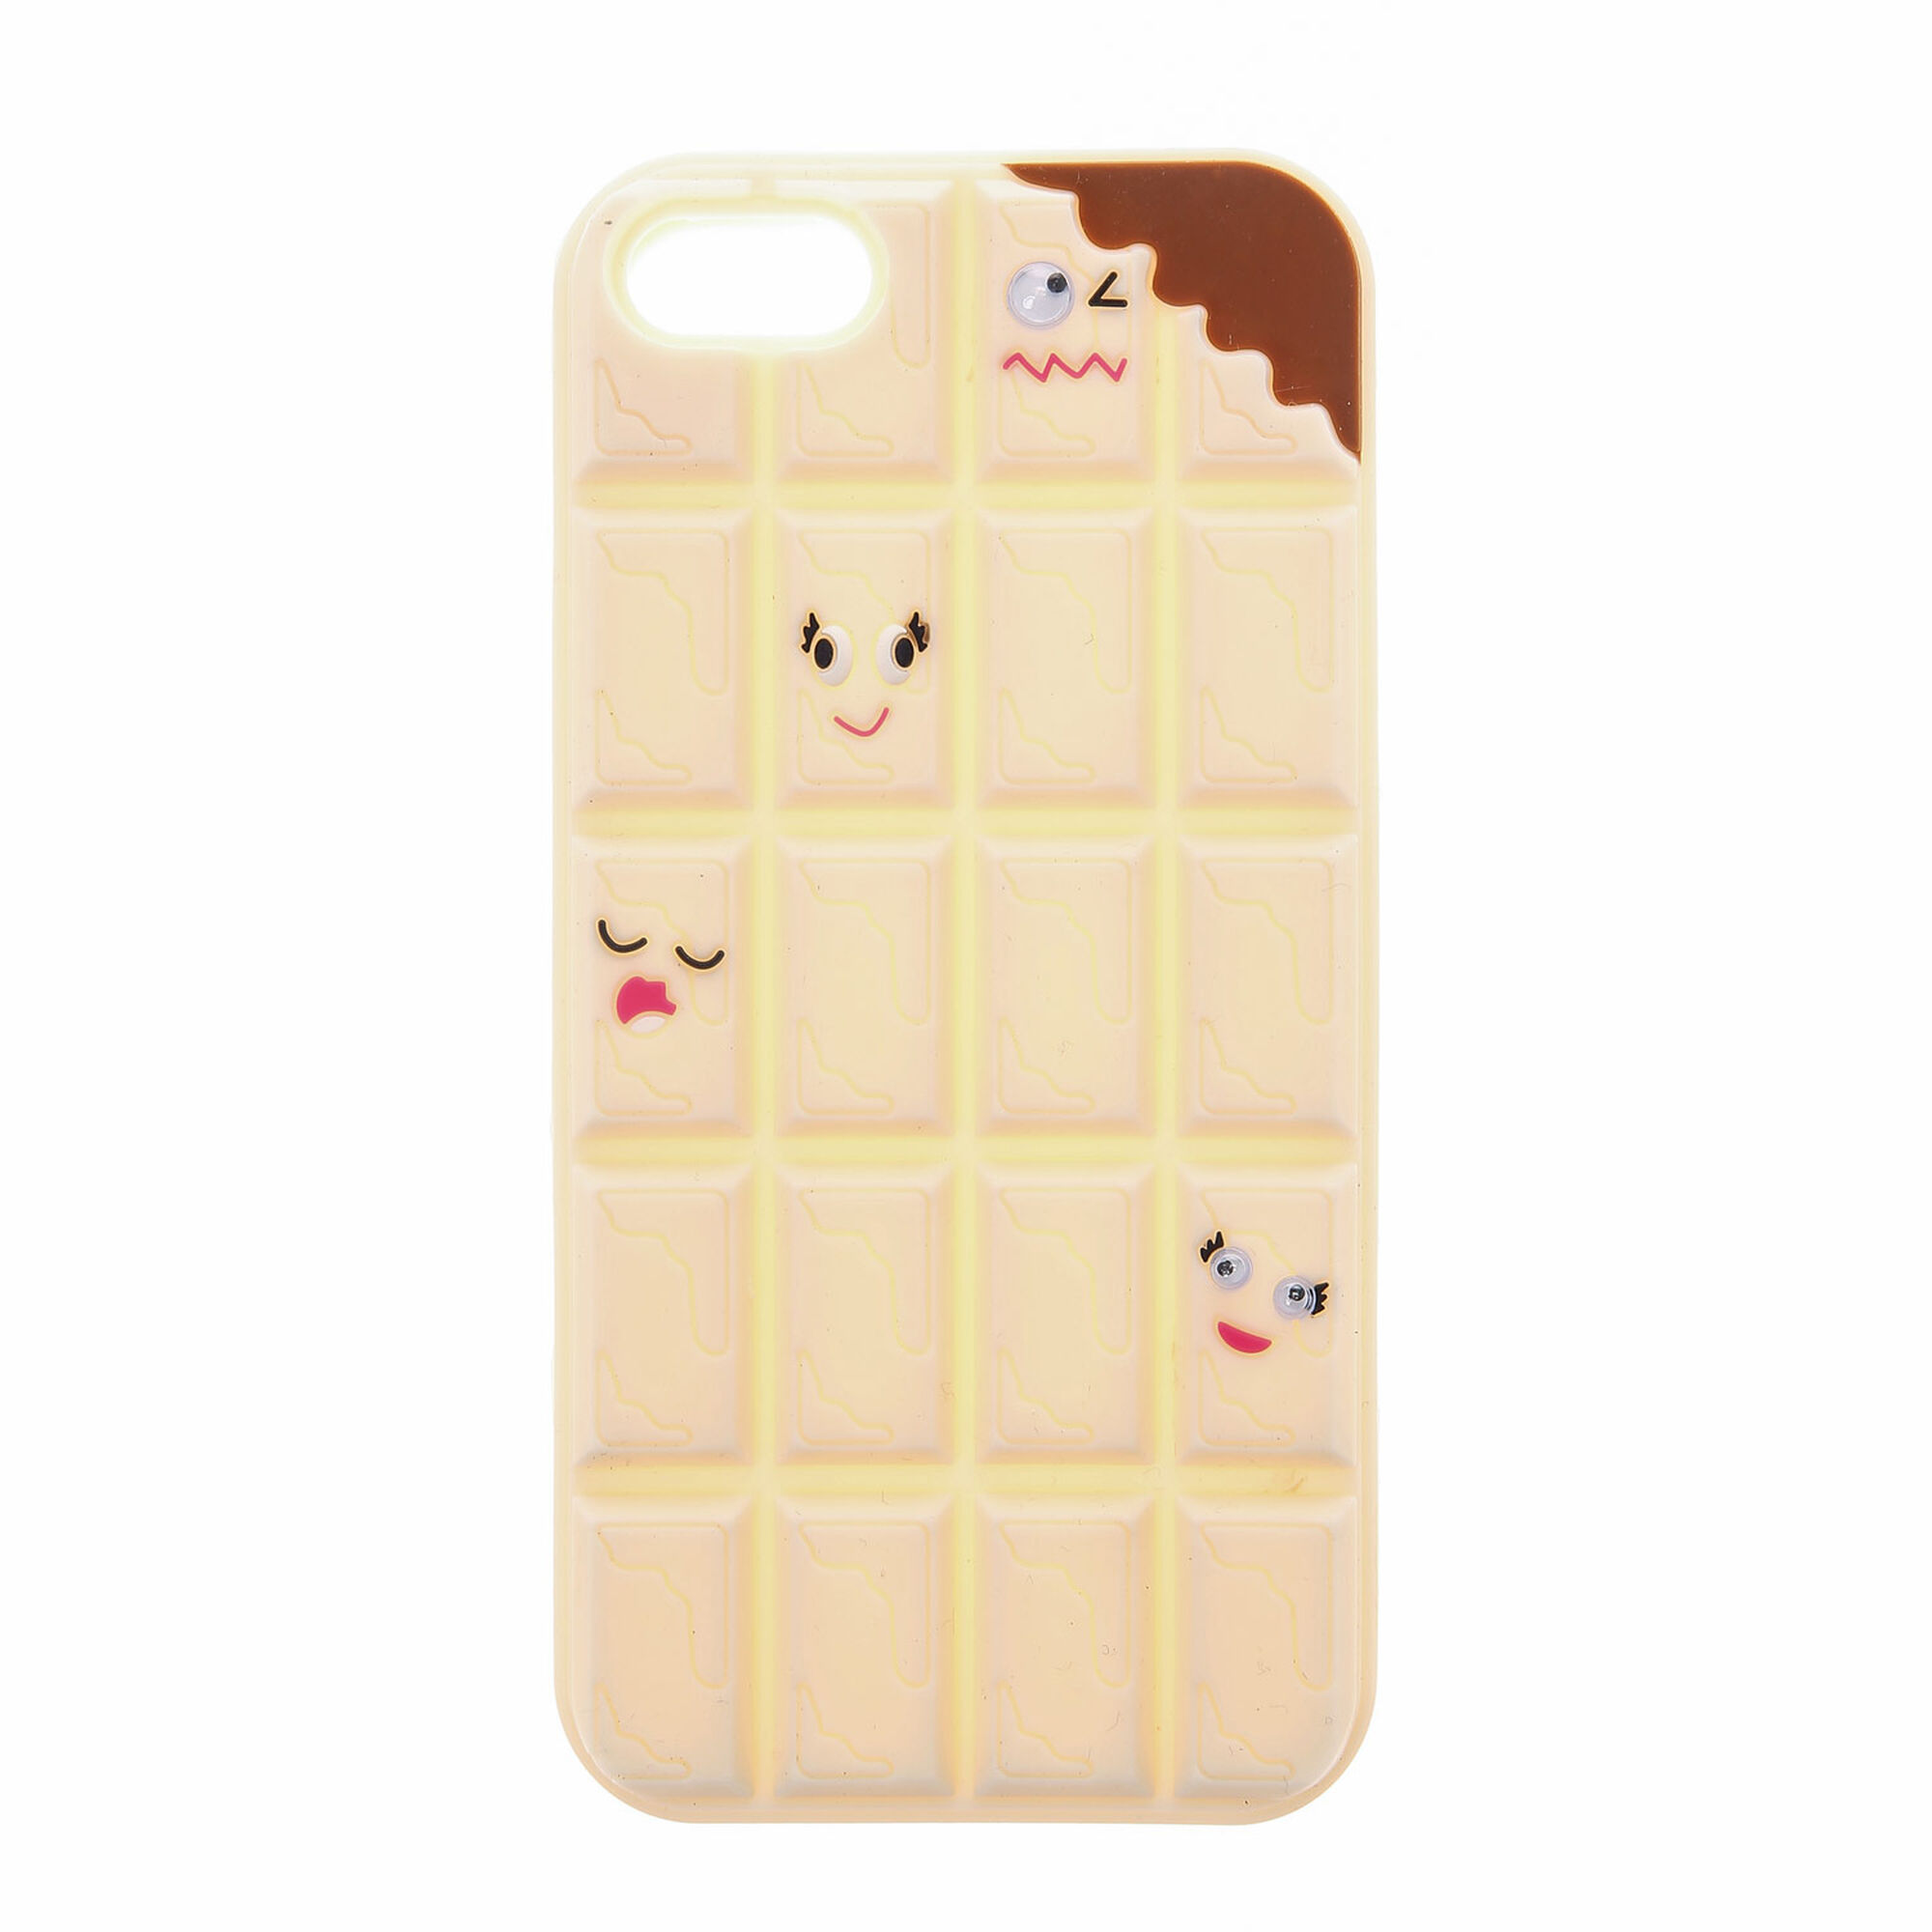 White Chocolate Chunks Phone Case | Claire's